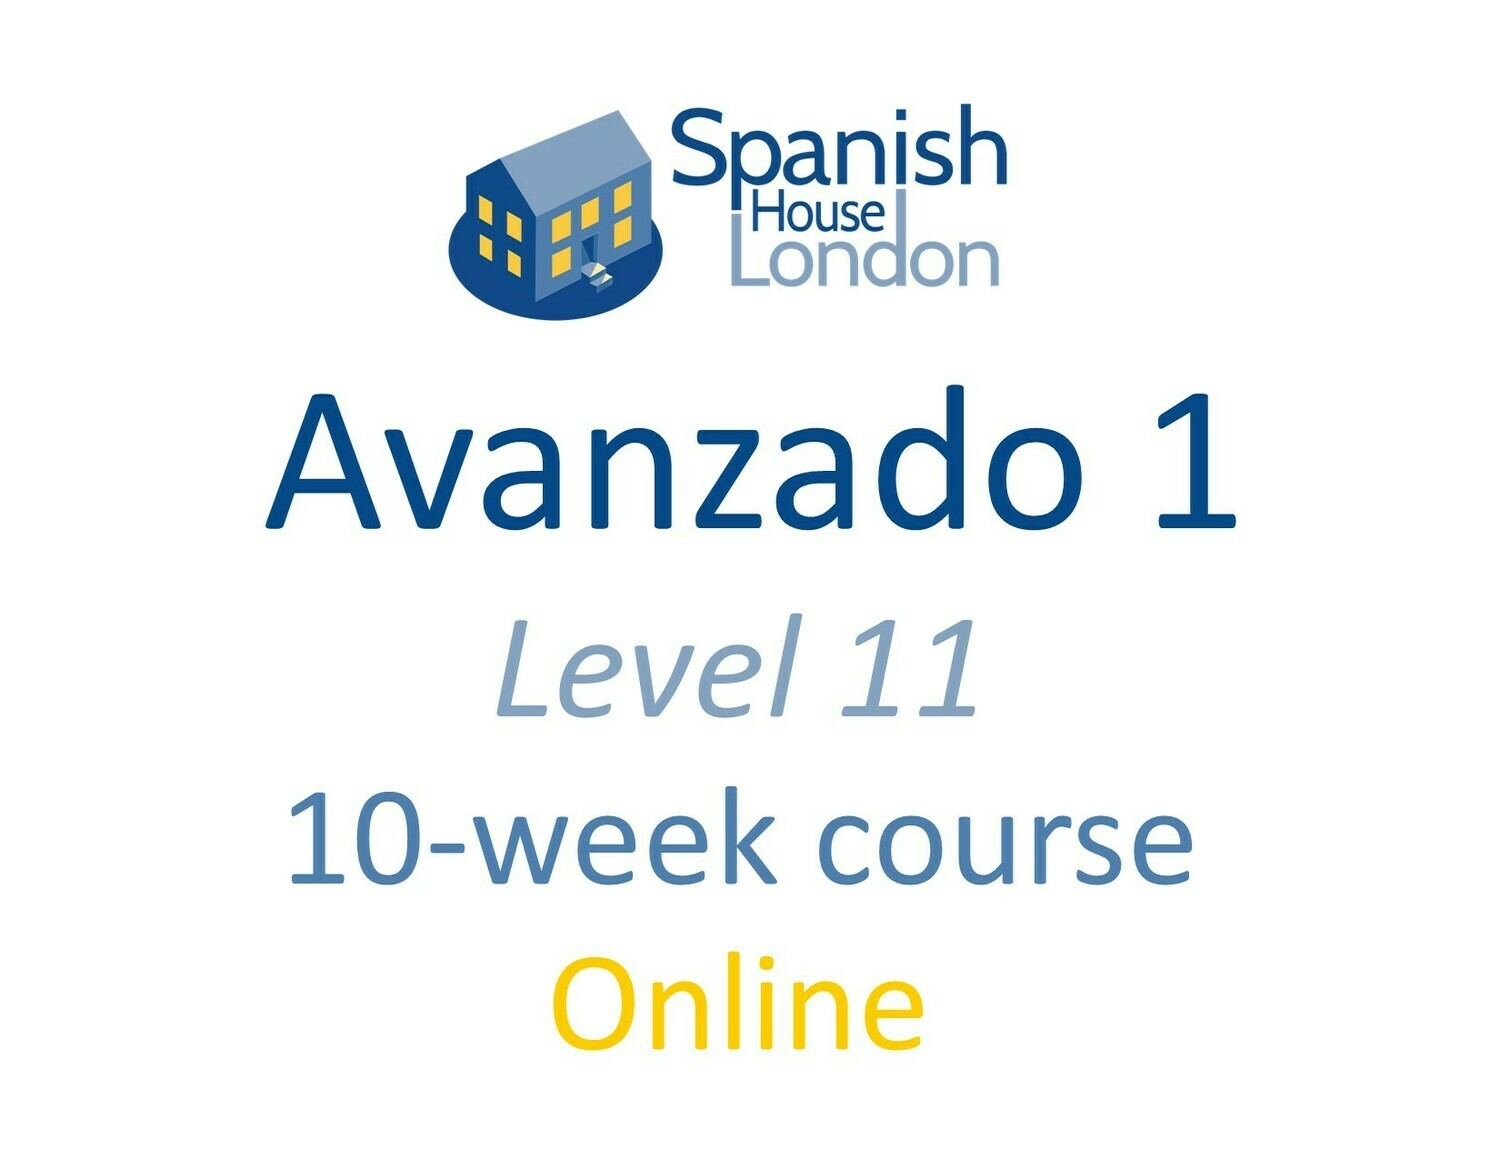 Avanzado 1 Course starting on 19th July at 6pm